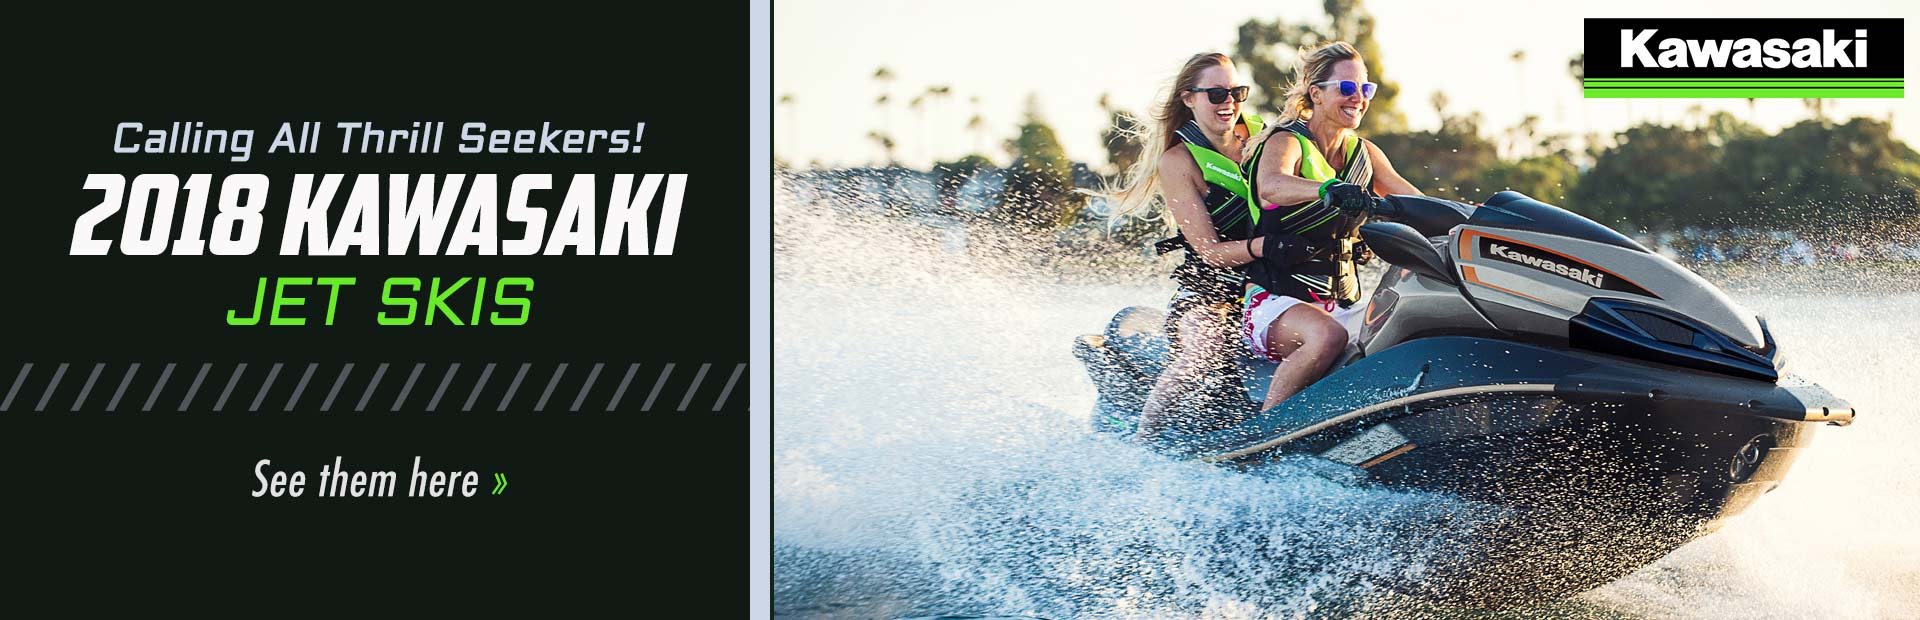 2018 Kawasaki Jet Skis: Click here to view the models.